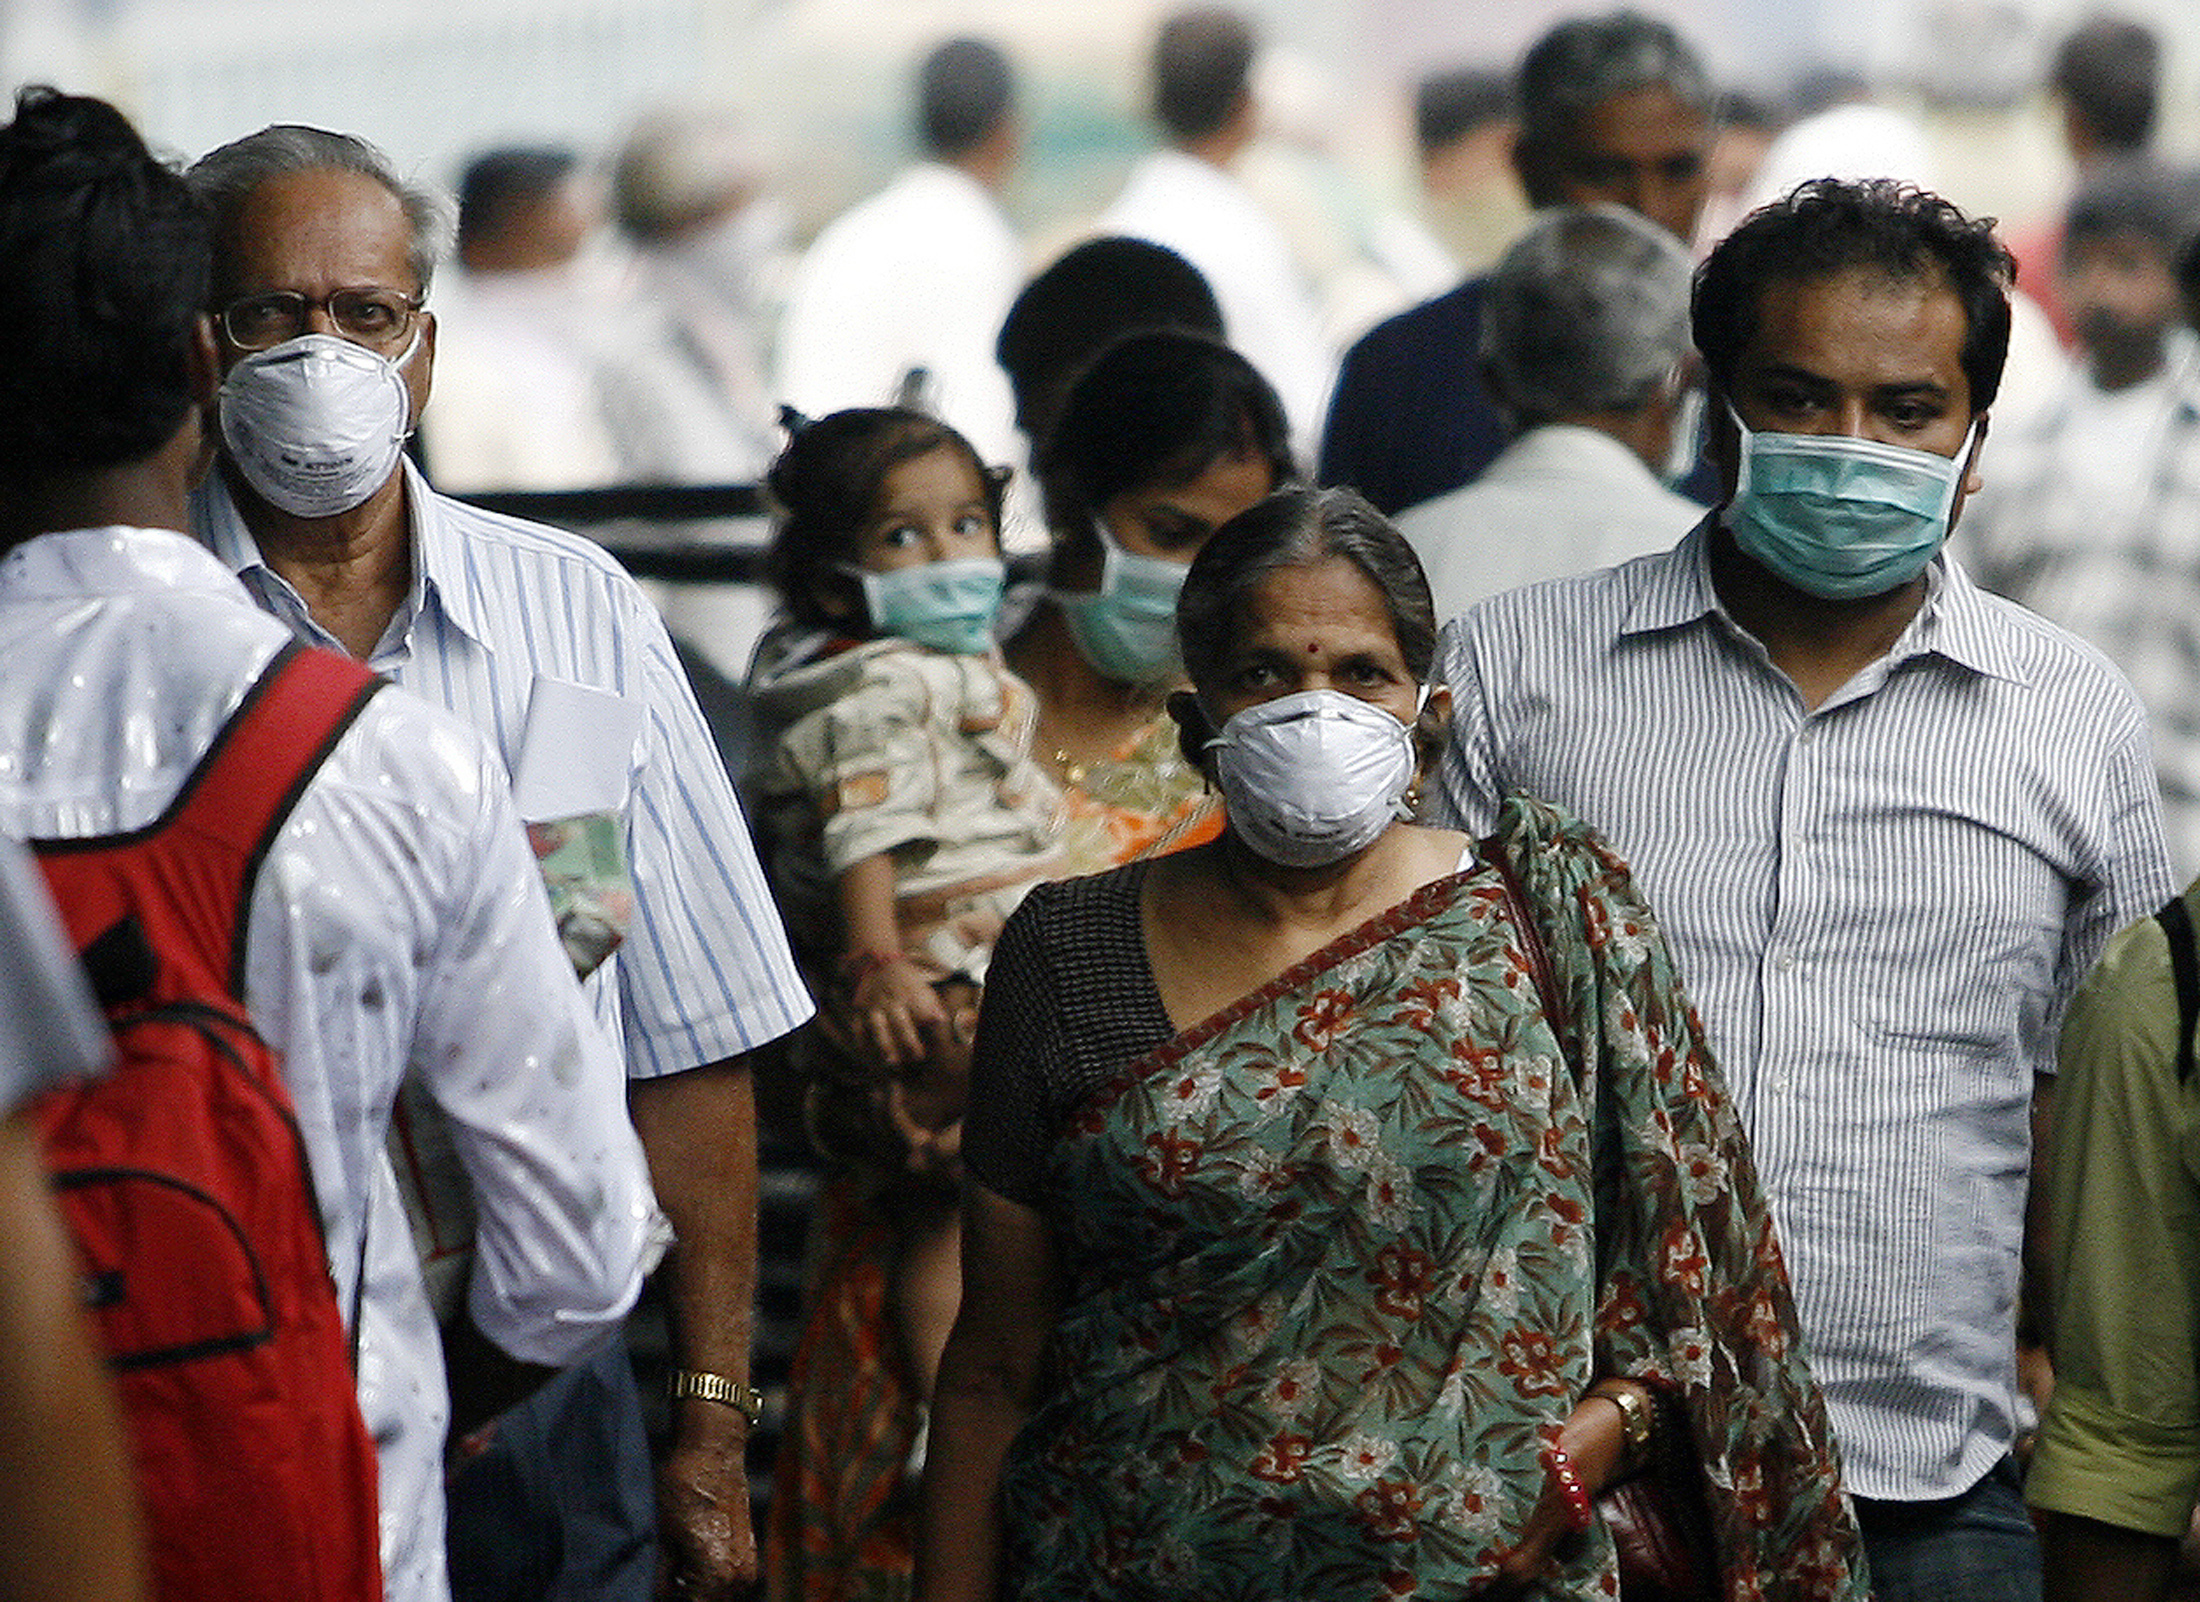 Travellers with masks walk on a railway platform in Pune August 18, 2009.